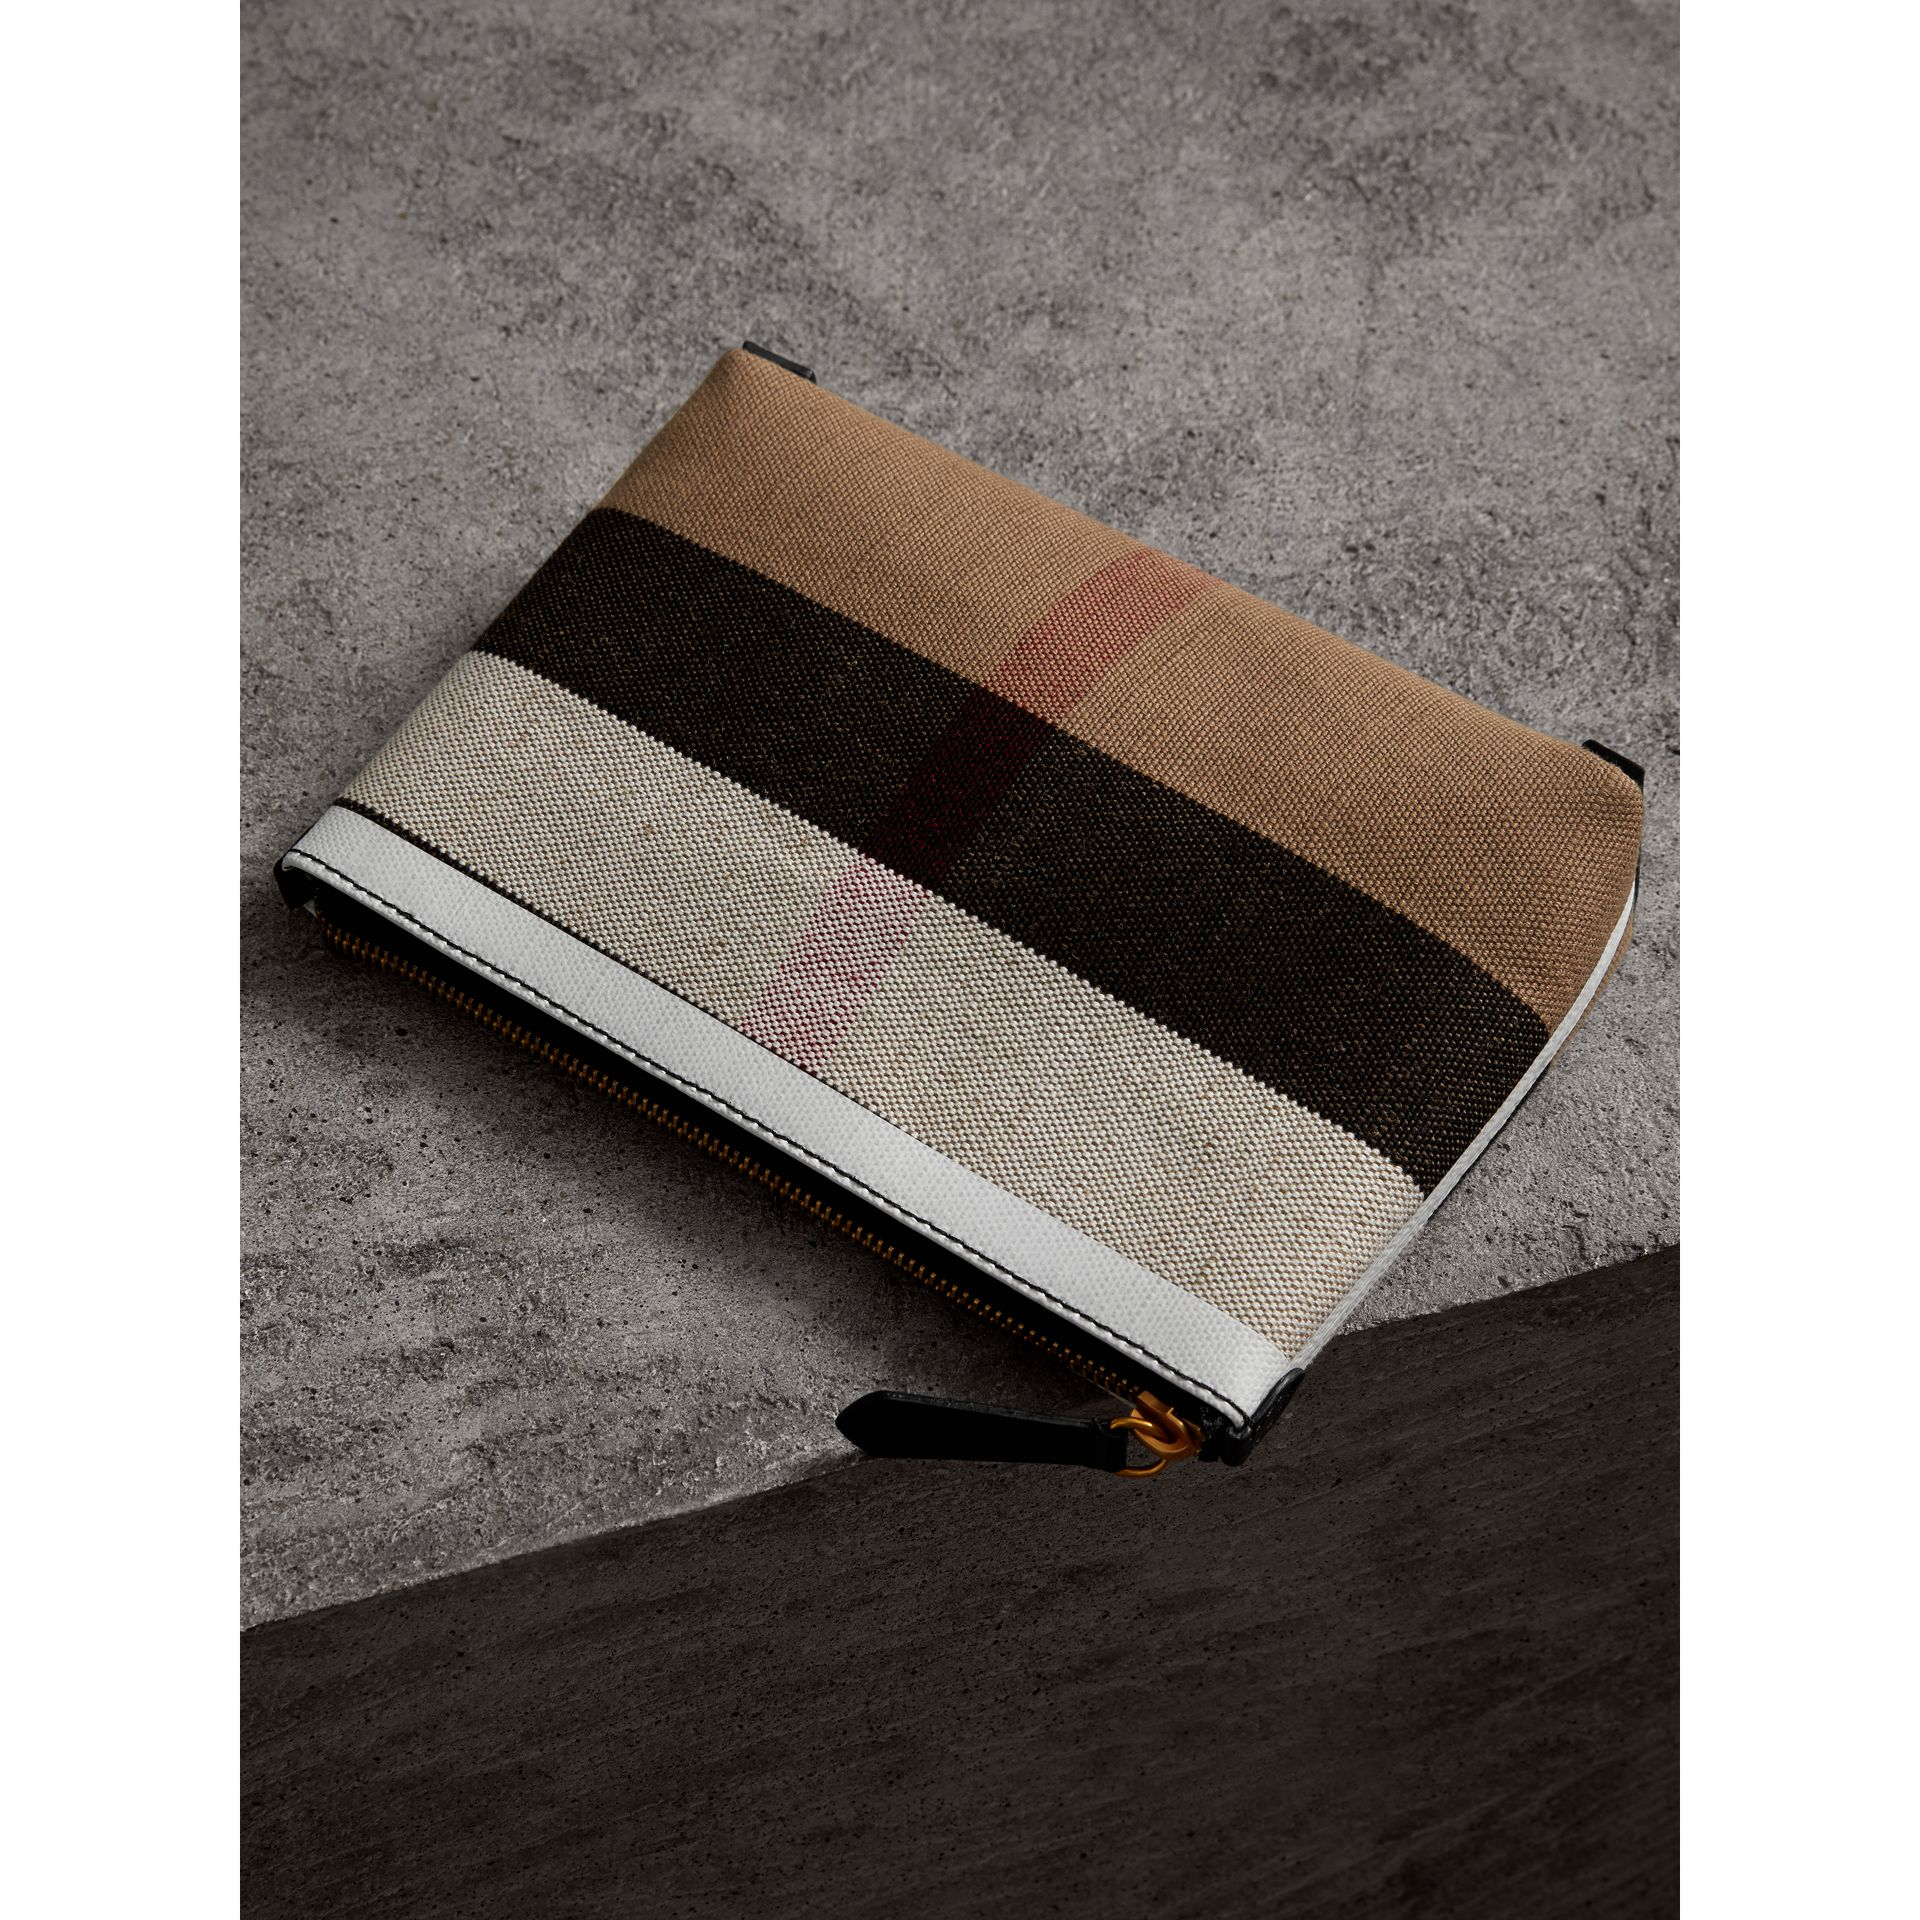 Medium Canvas Check and Leather Zip Pouch in Black/white - Women | Burberry Canada - gallery image 4